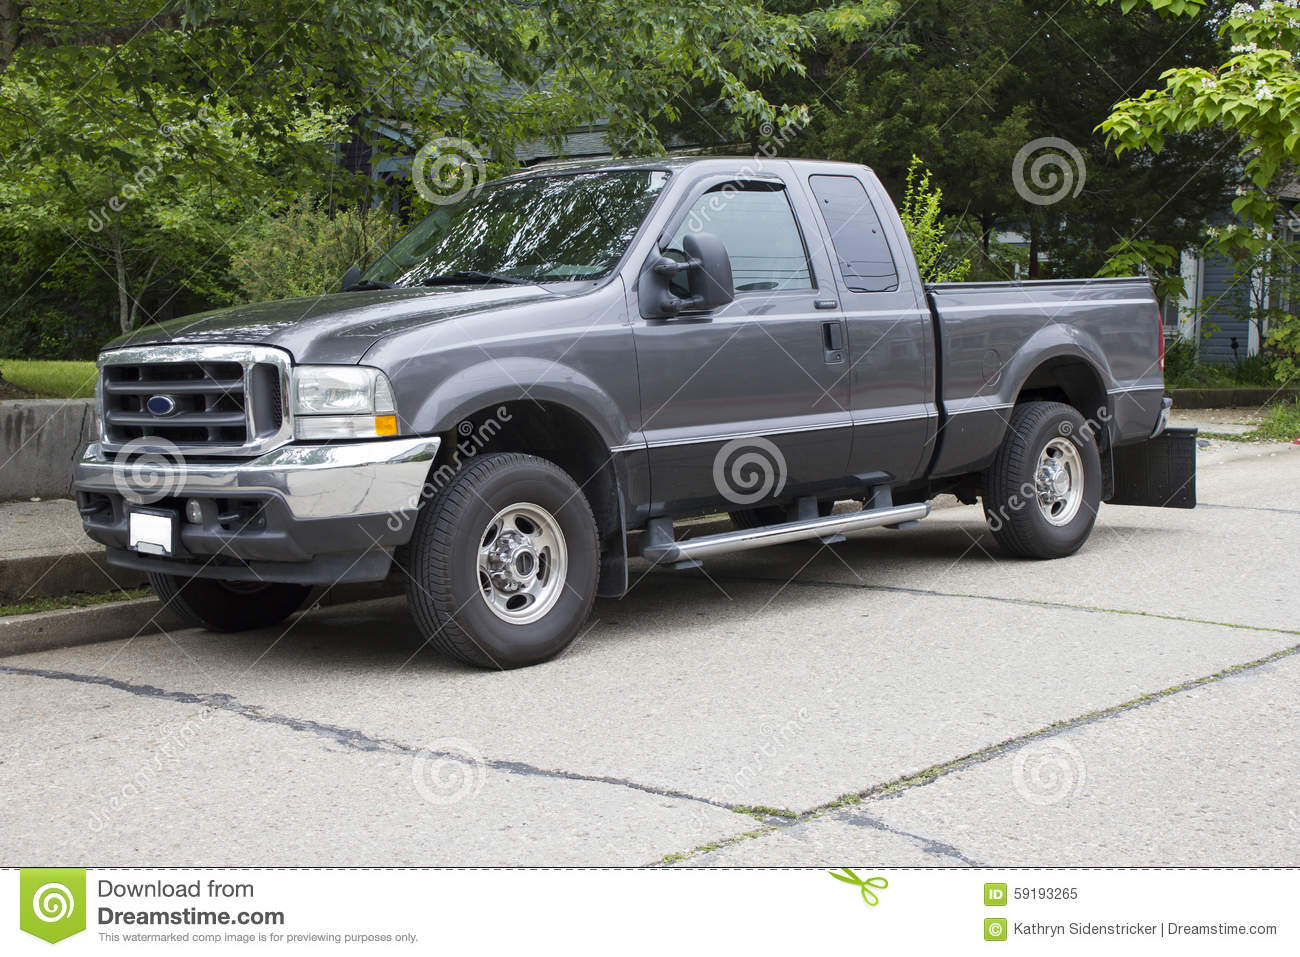 Ford Truck Stock Photos Royalty Free Images 1949 F 250 4x4 2005 Super Duty A Charcoal Gray F250 Powerstroke Diesel